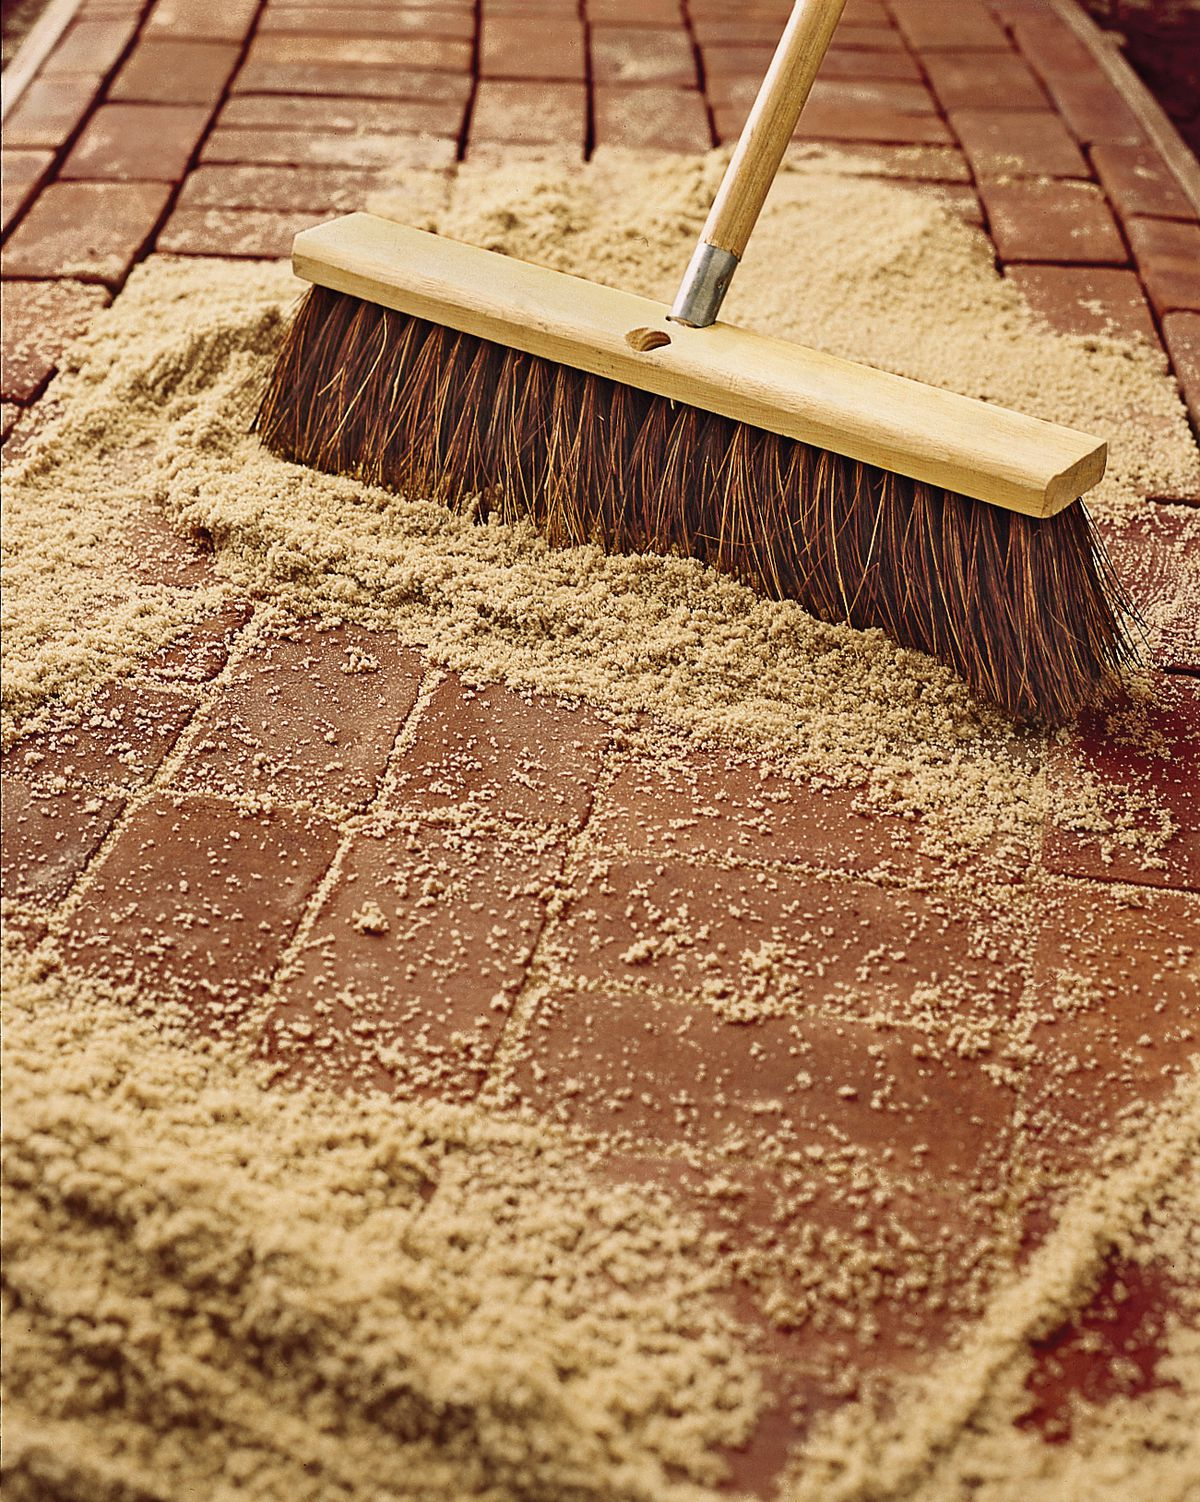 Man Uses Push Broom To Fill In Joints Of Bricks With Sand